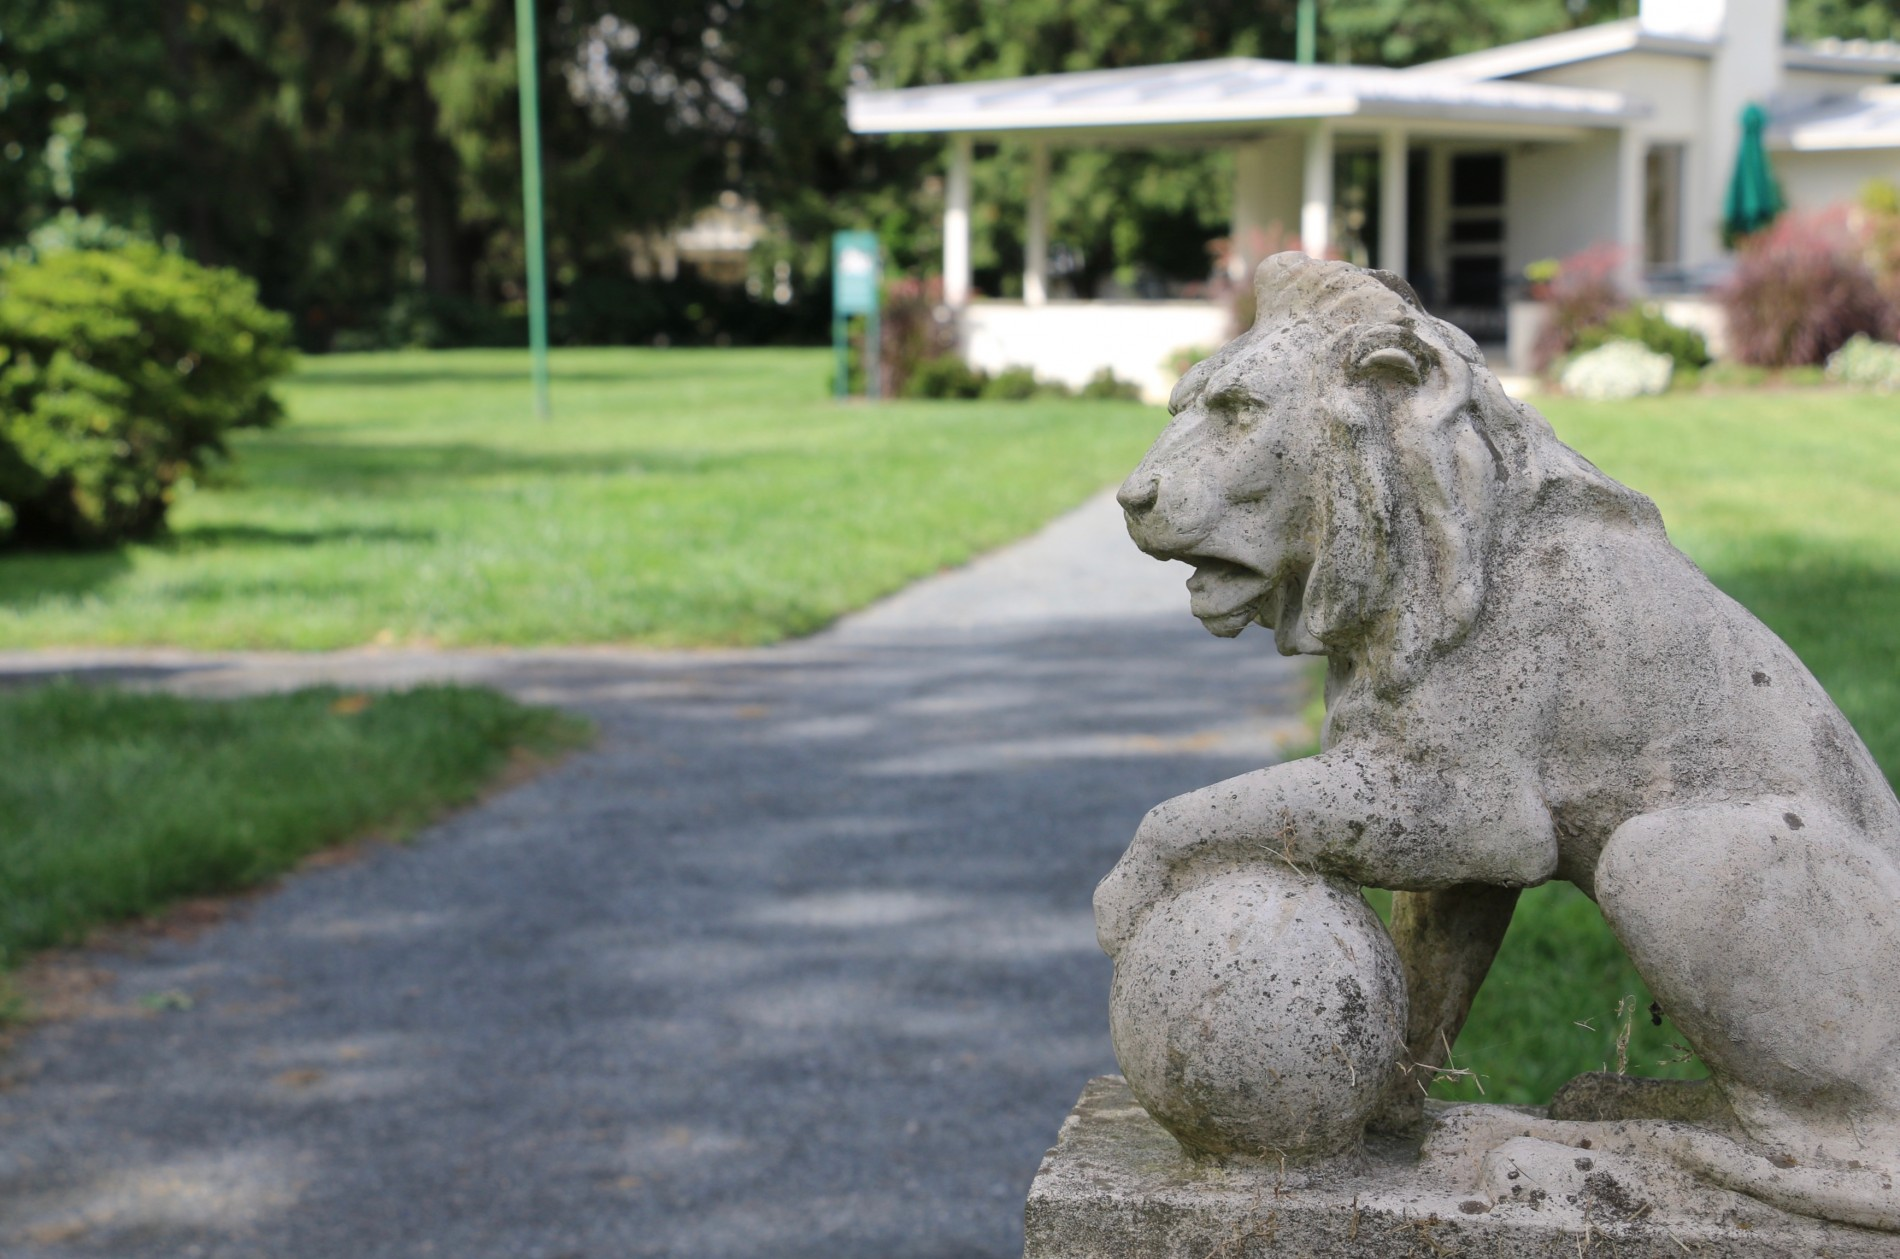 Ornamental lion guarding the pool house entrance at Morven Museum & Garden